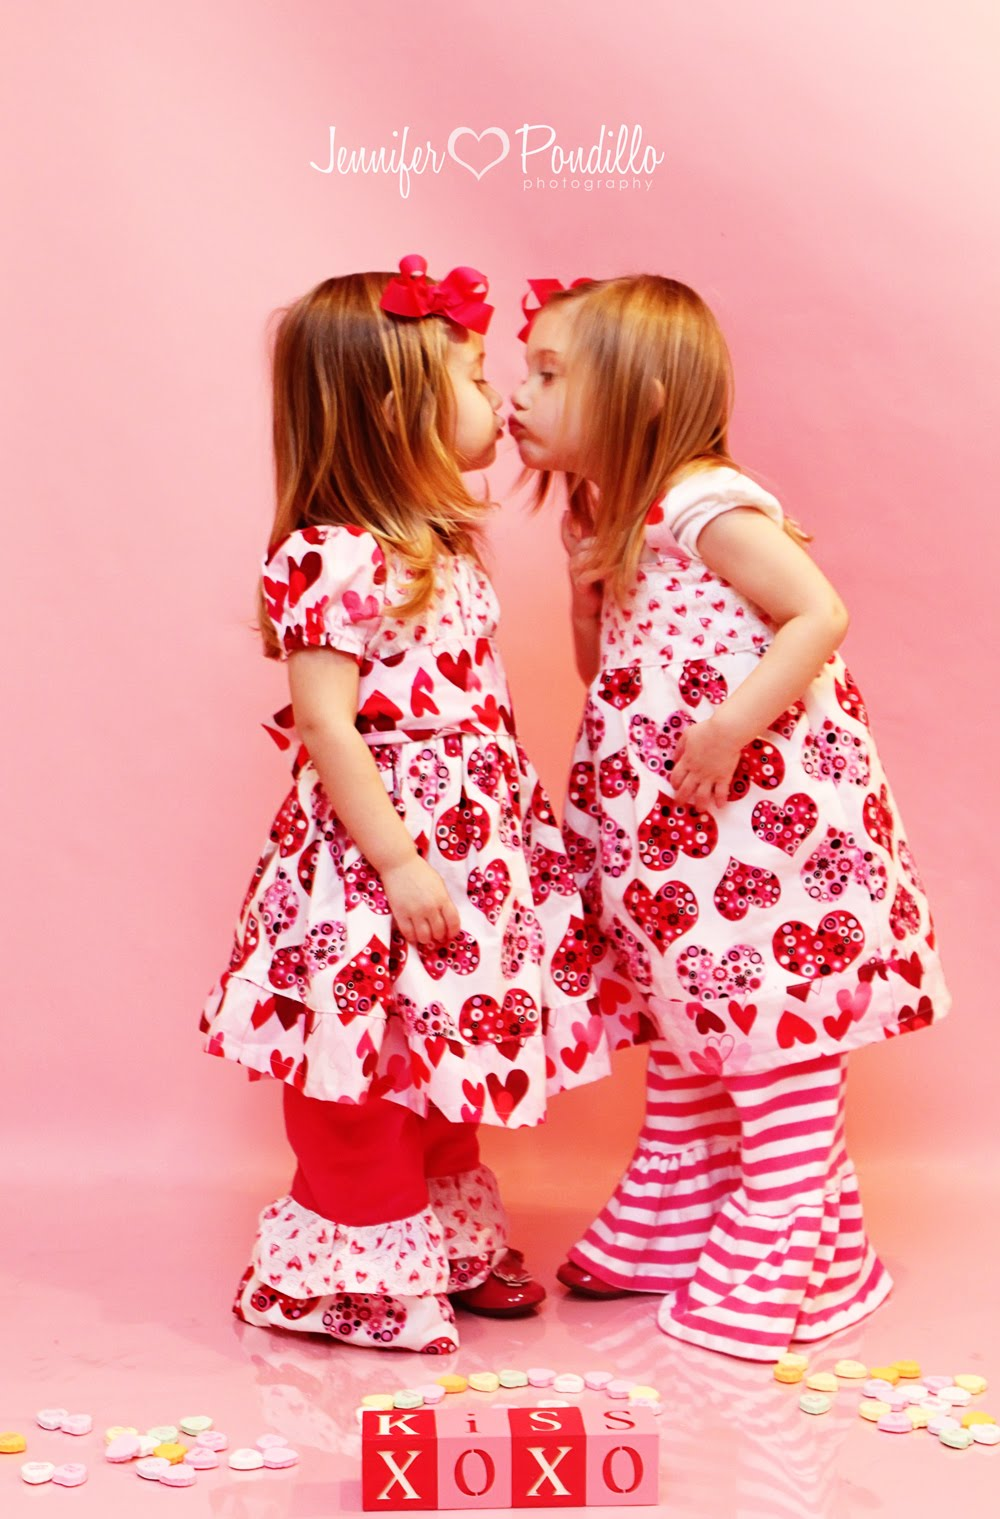 ... and so have these uber-cute twin pictures by Jennifer Pondillo (she's ...